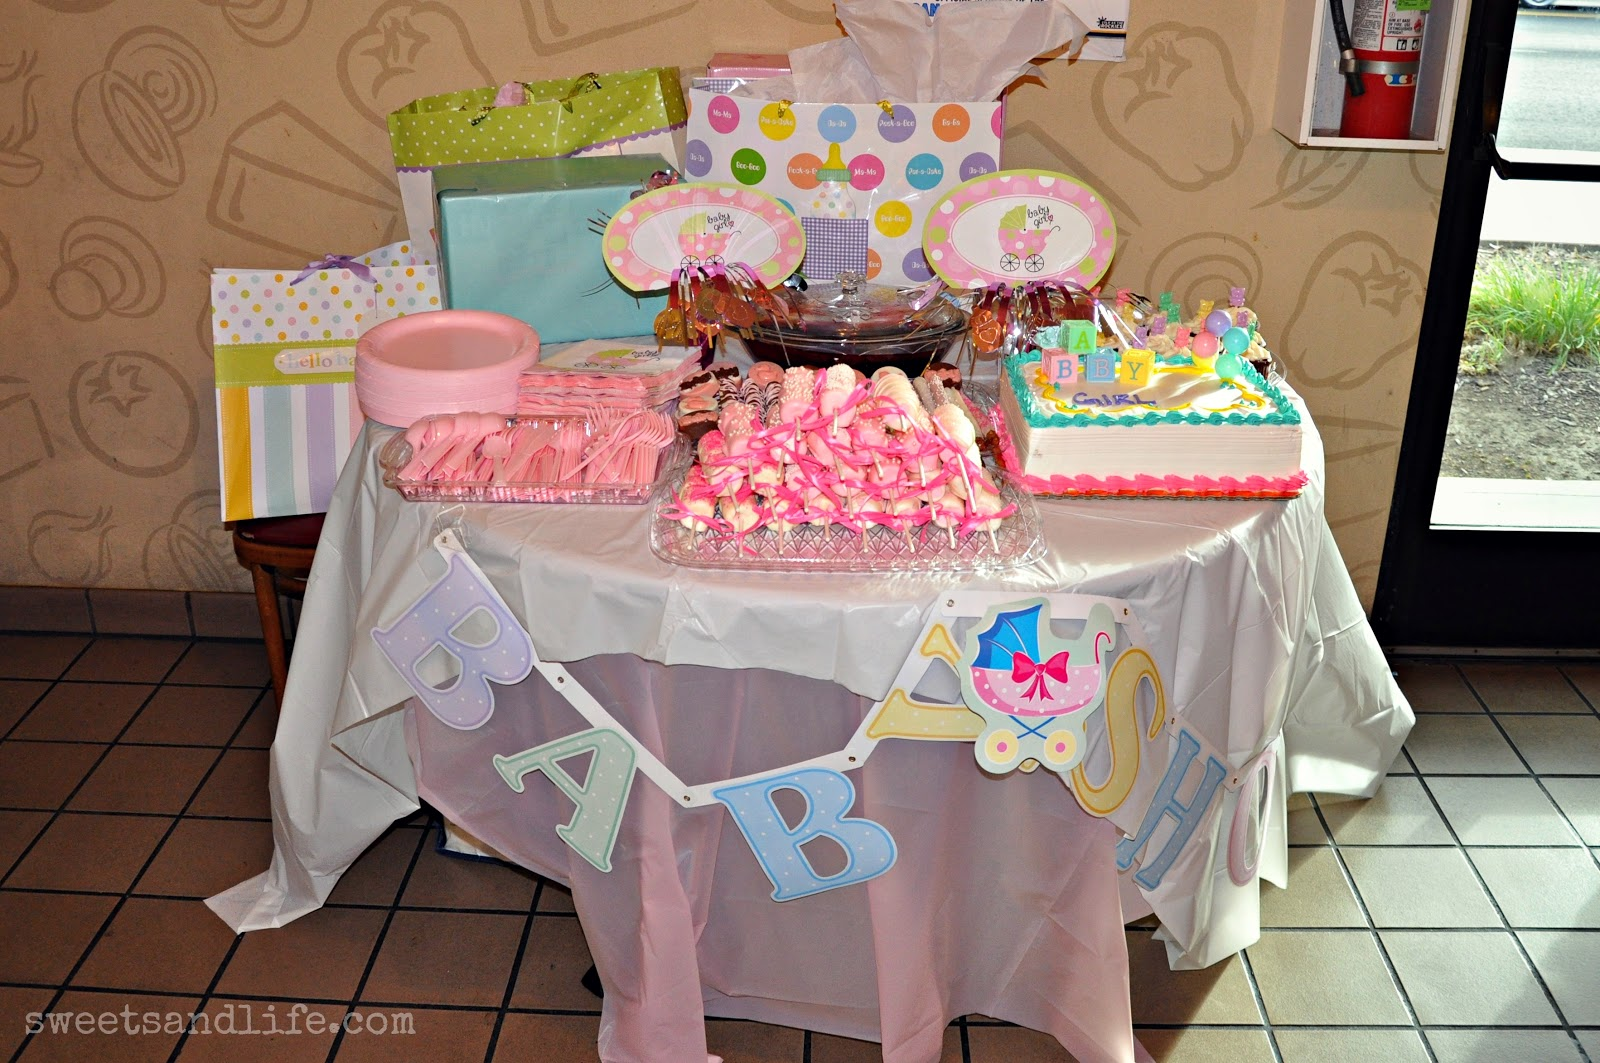 Baby Shower Cakes From Sams Club Hilarious Baby Shower Shower Club From Cakes  Baby Sams Albertsons